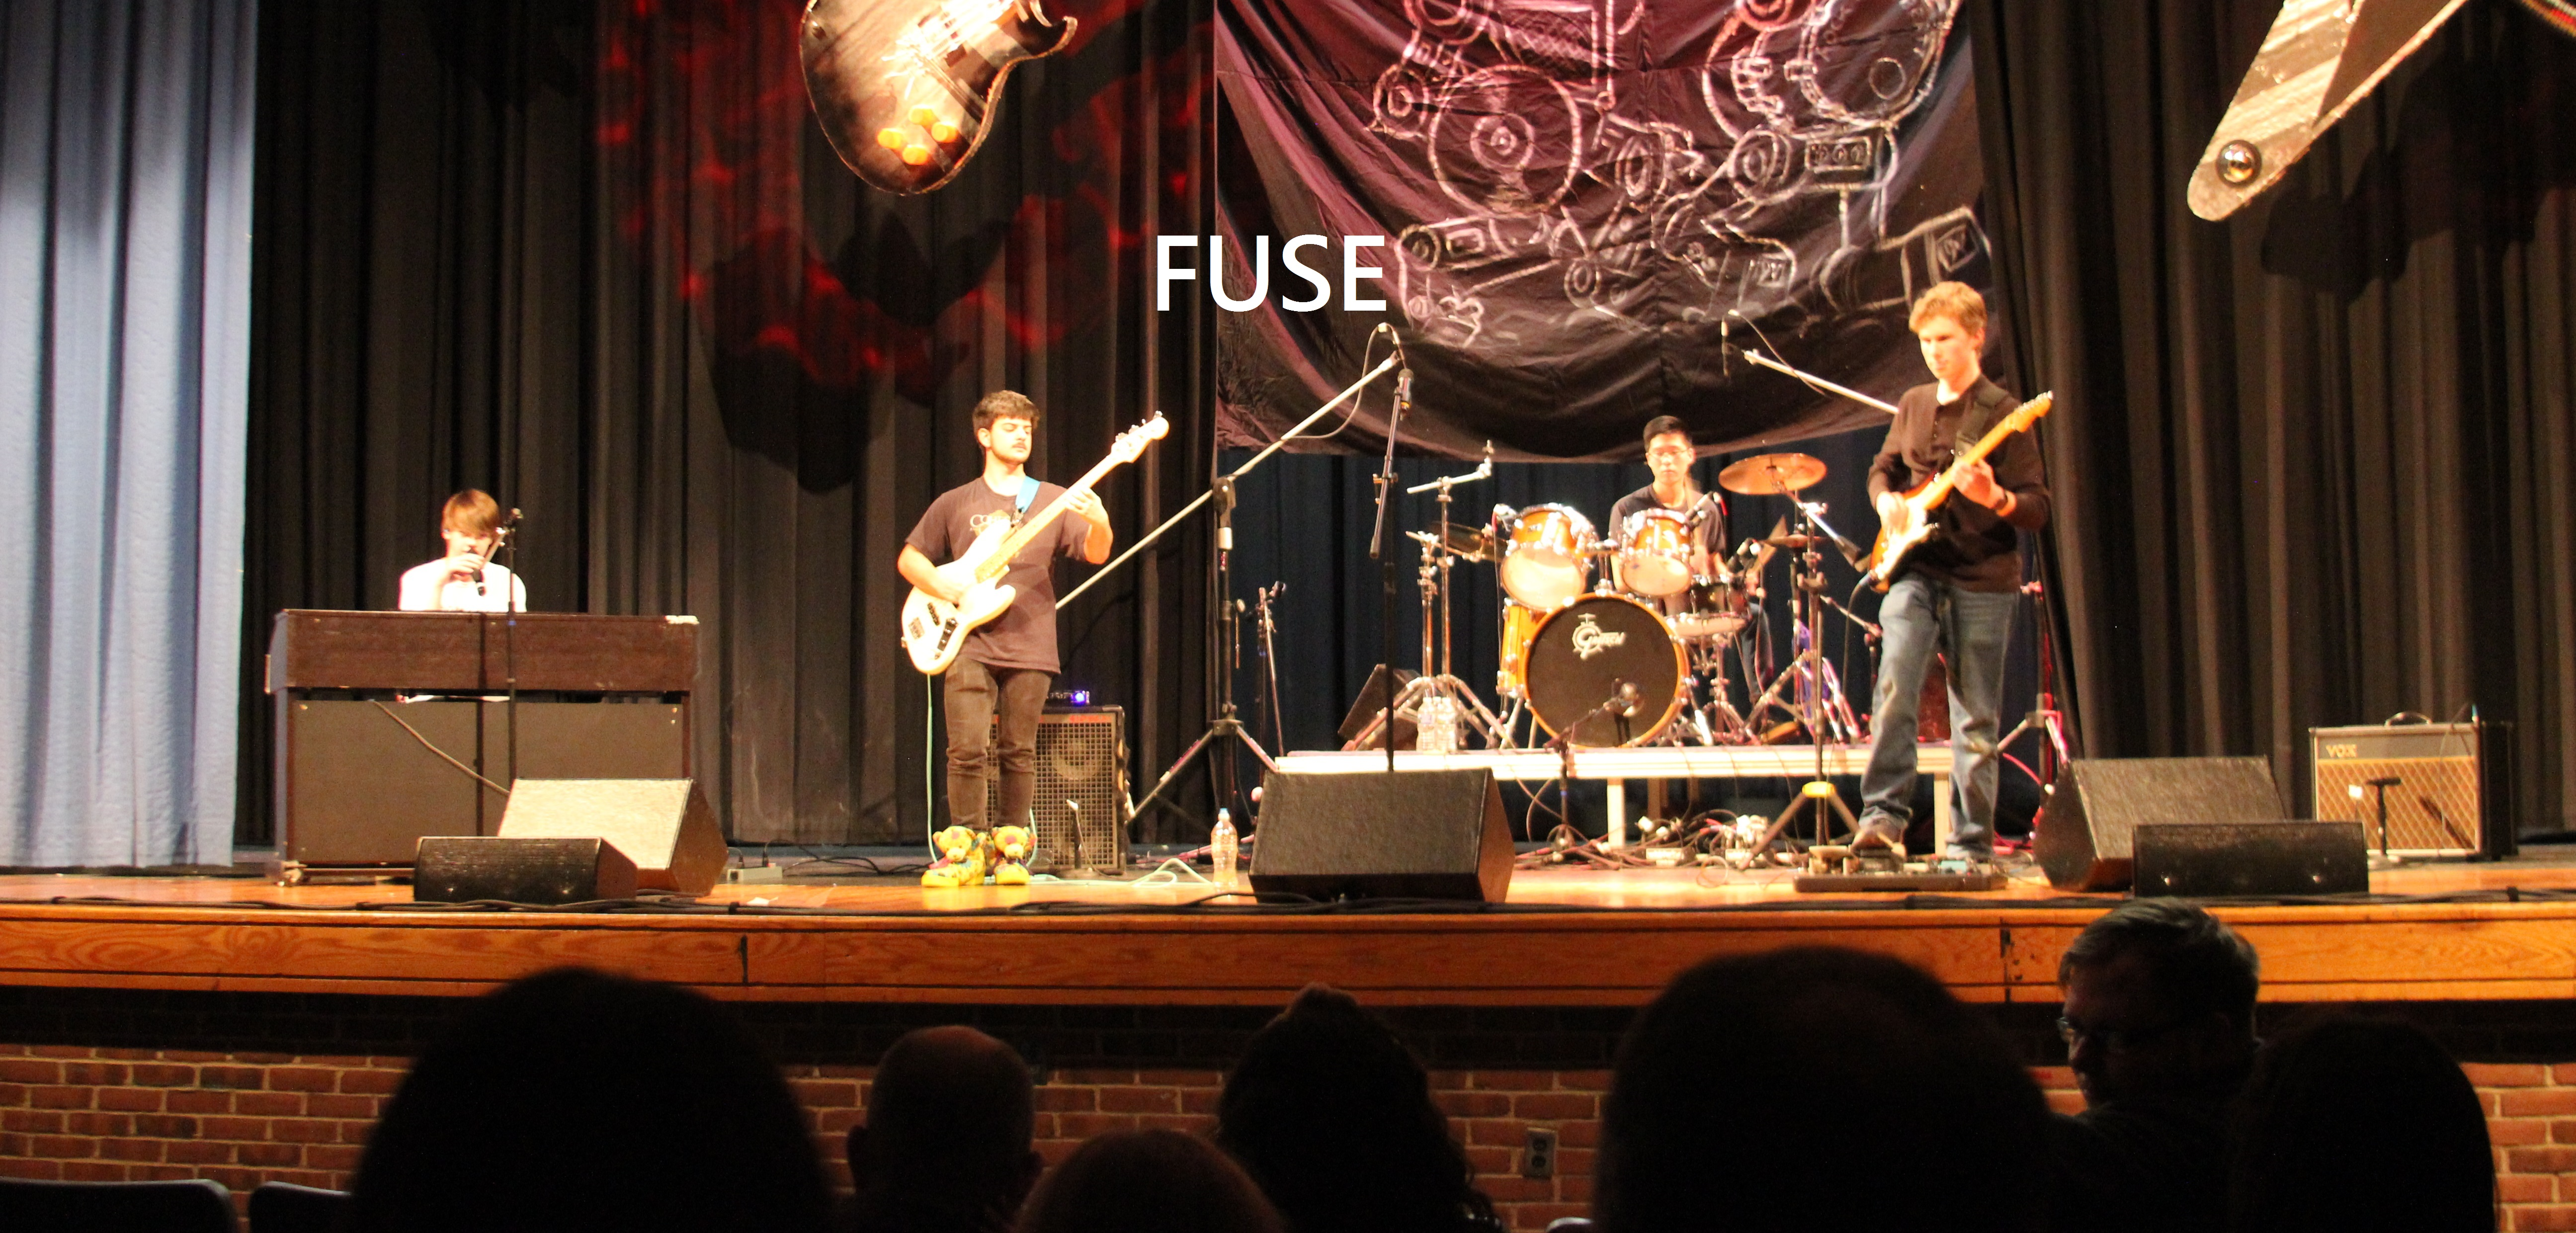 FUSE band, FUSE, Maryland, Rock, Rock Music, Rock Band, Maryland Rock Band, Classic Rock, Maryland, Virginia, DC, Battle of the Bands, Charity Band, Best Band, FUSE, Opening Band, Support Band